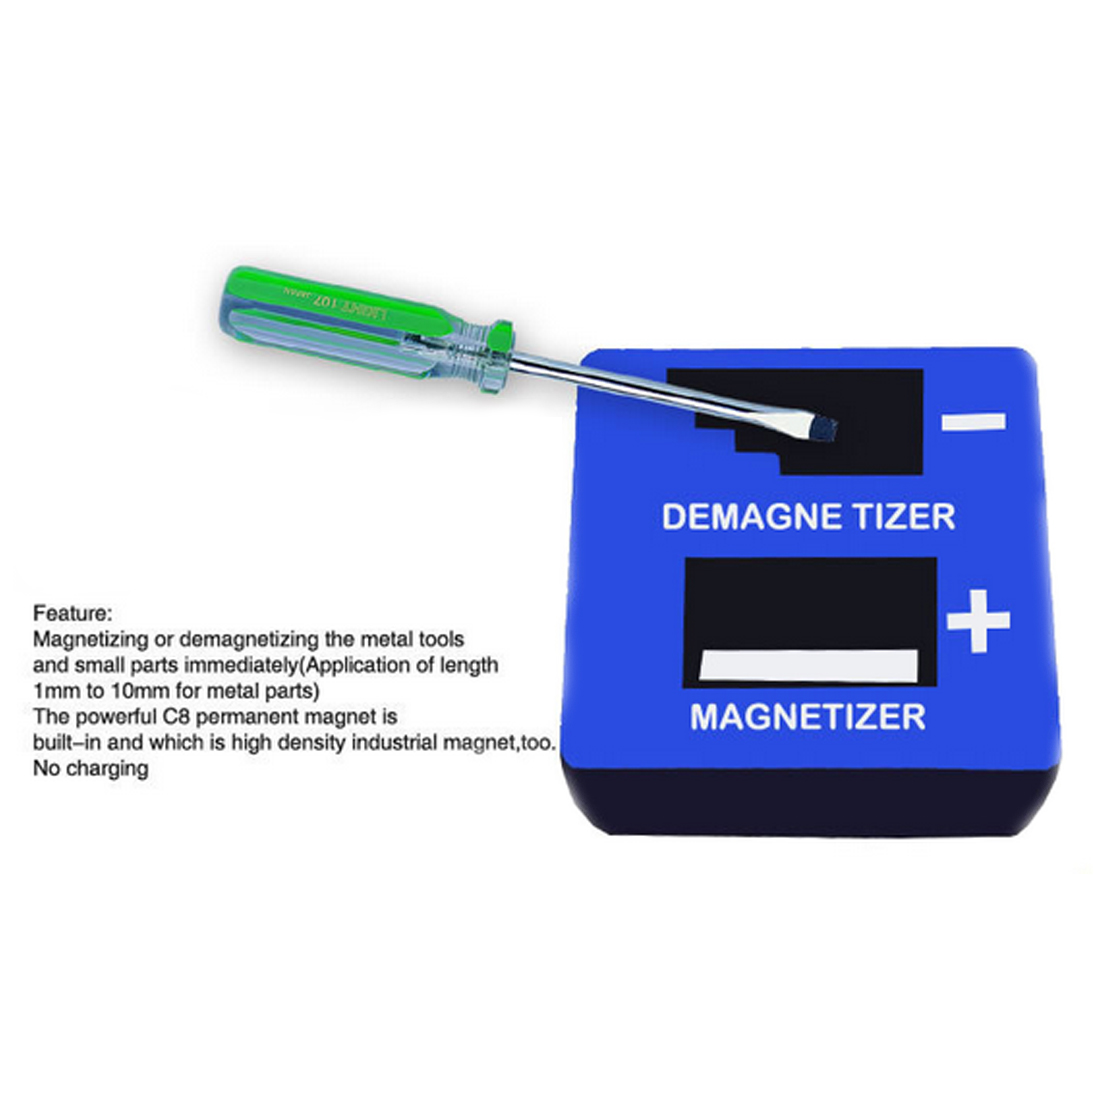 Magnetizer Demagnetizer Tool Screwdriver Bench Tips Bits Gadget Handy Magnetized Driver Quick Magnetic Degaussing Household Tool